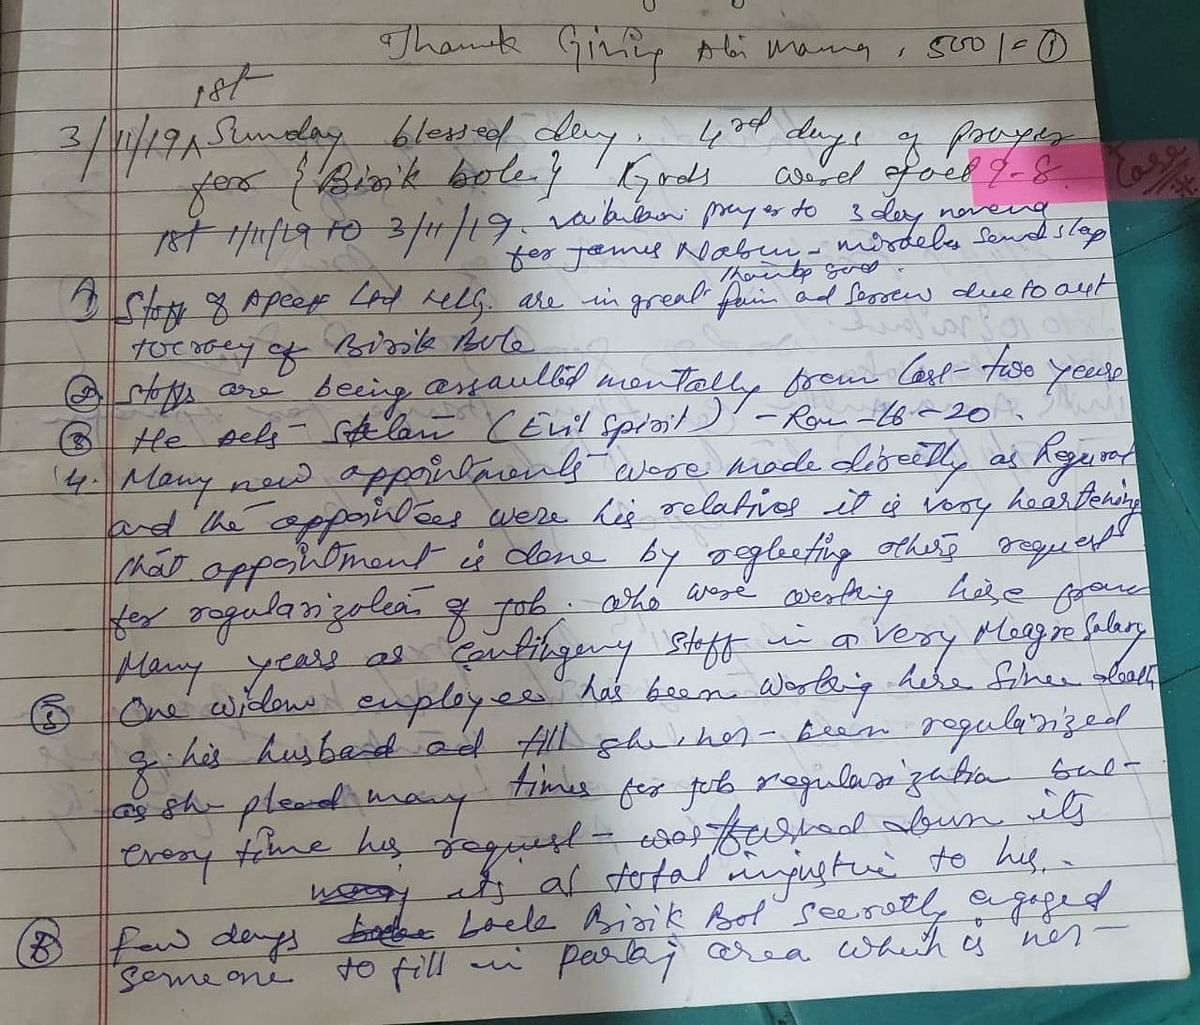 Hand-written notes from the deceased diary where she has mentioned the name of the managing director repeatedly